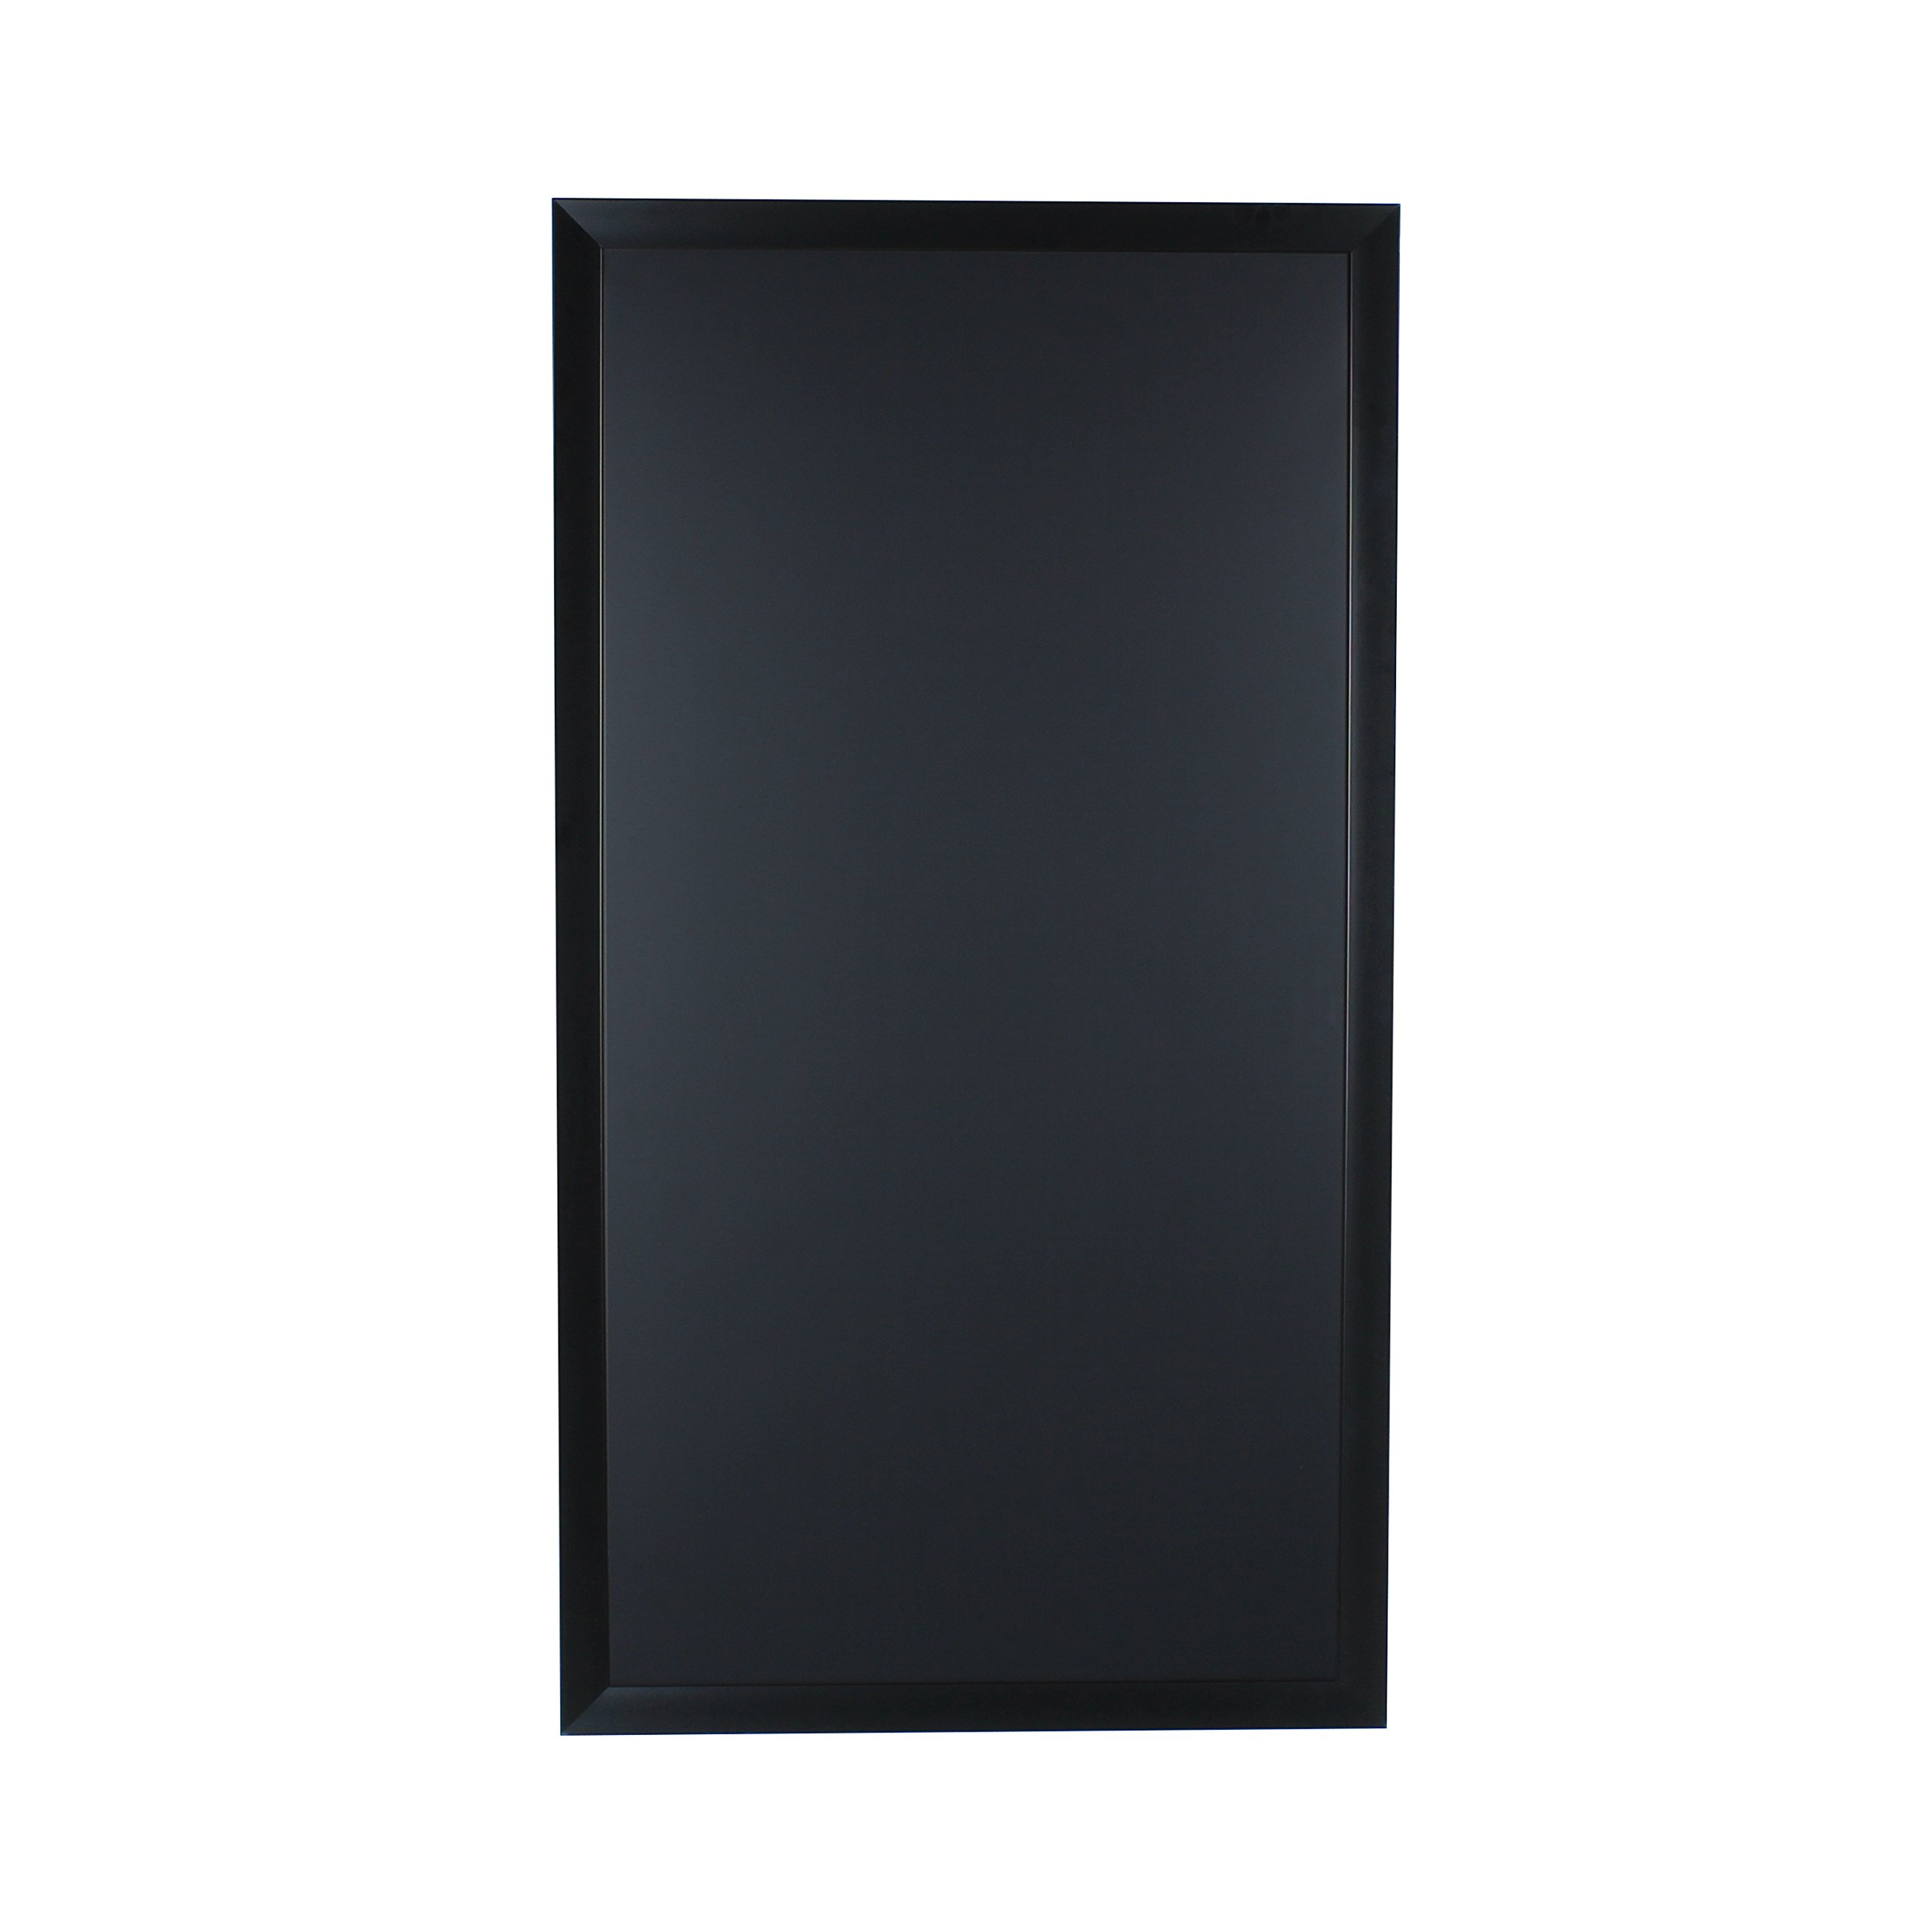 Beatrice Wall Mounted Oversized Framed Magnetic Chalkboard, Black